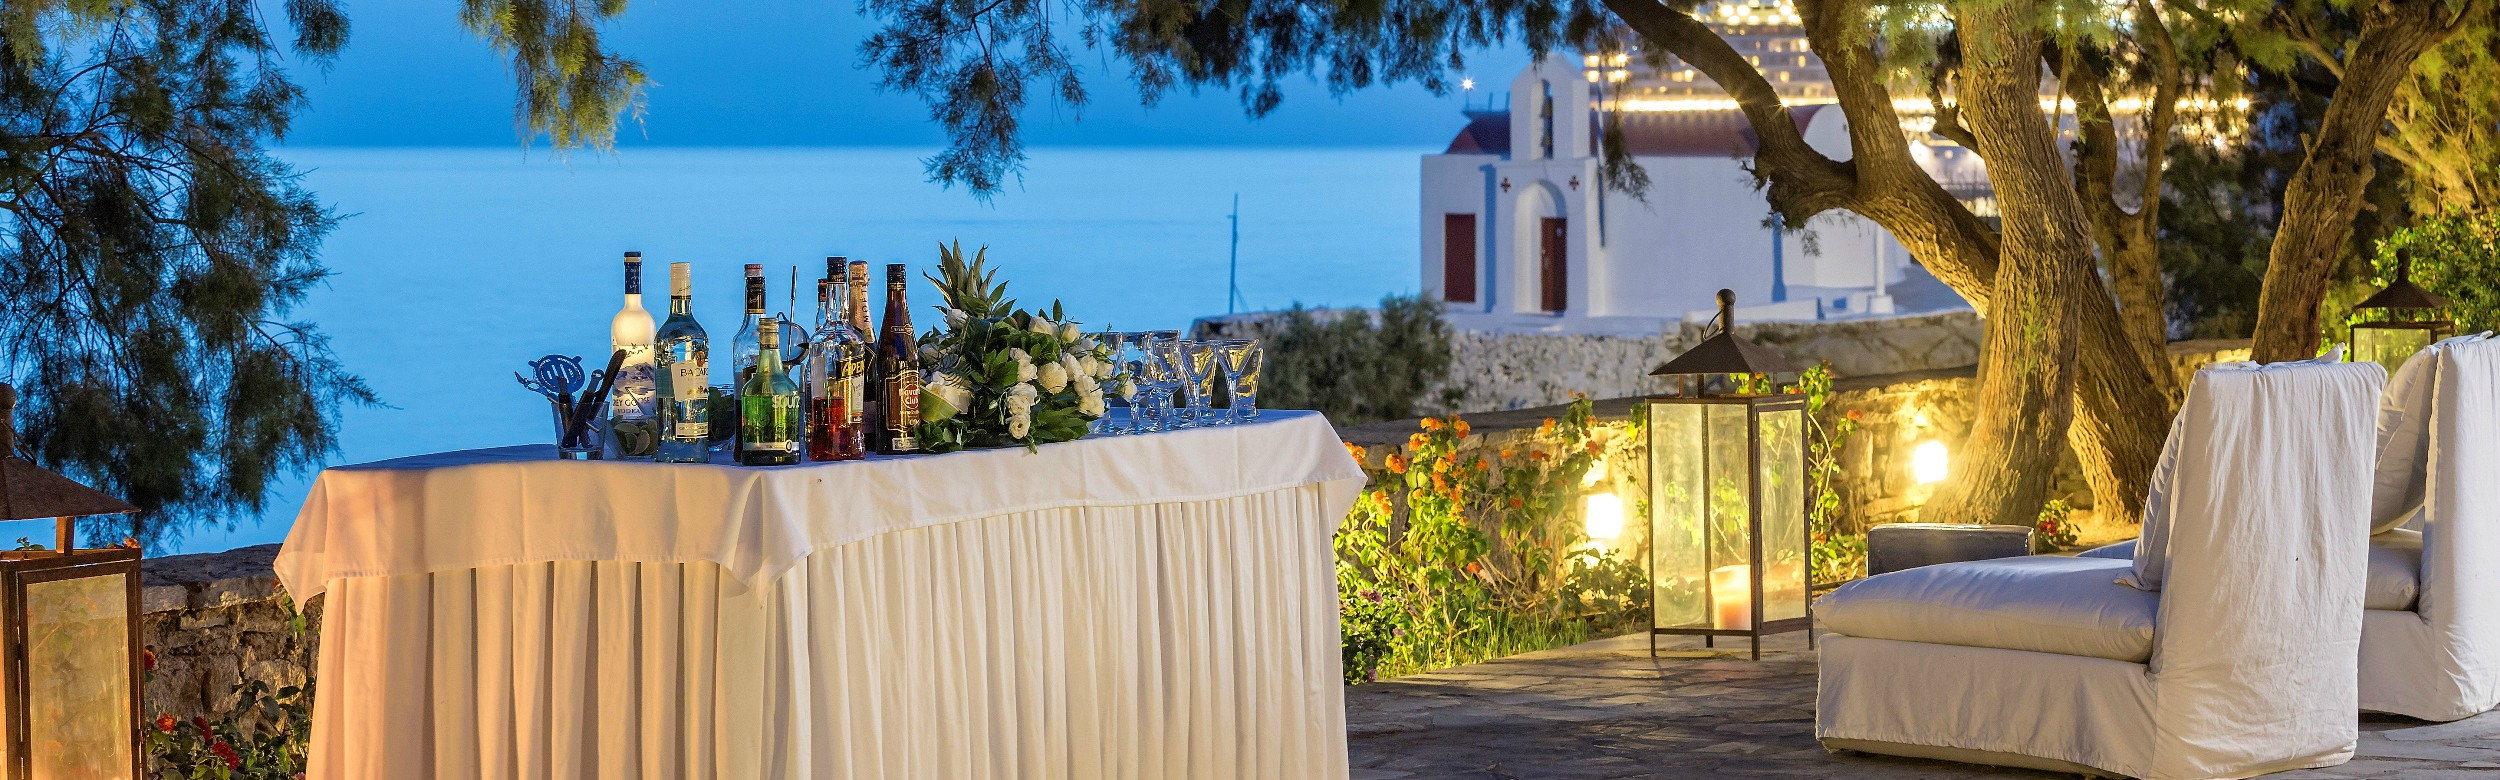 _ Mykonos_Theoxenia_-_Wedding_dinner_30001.jpg